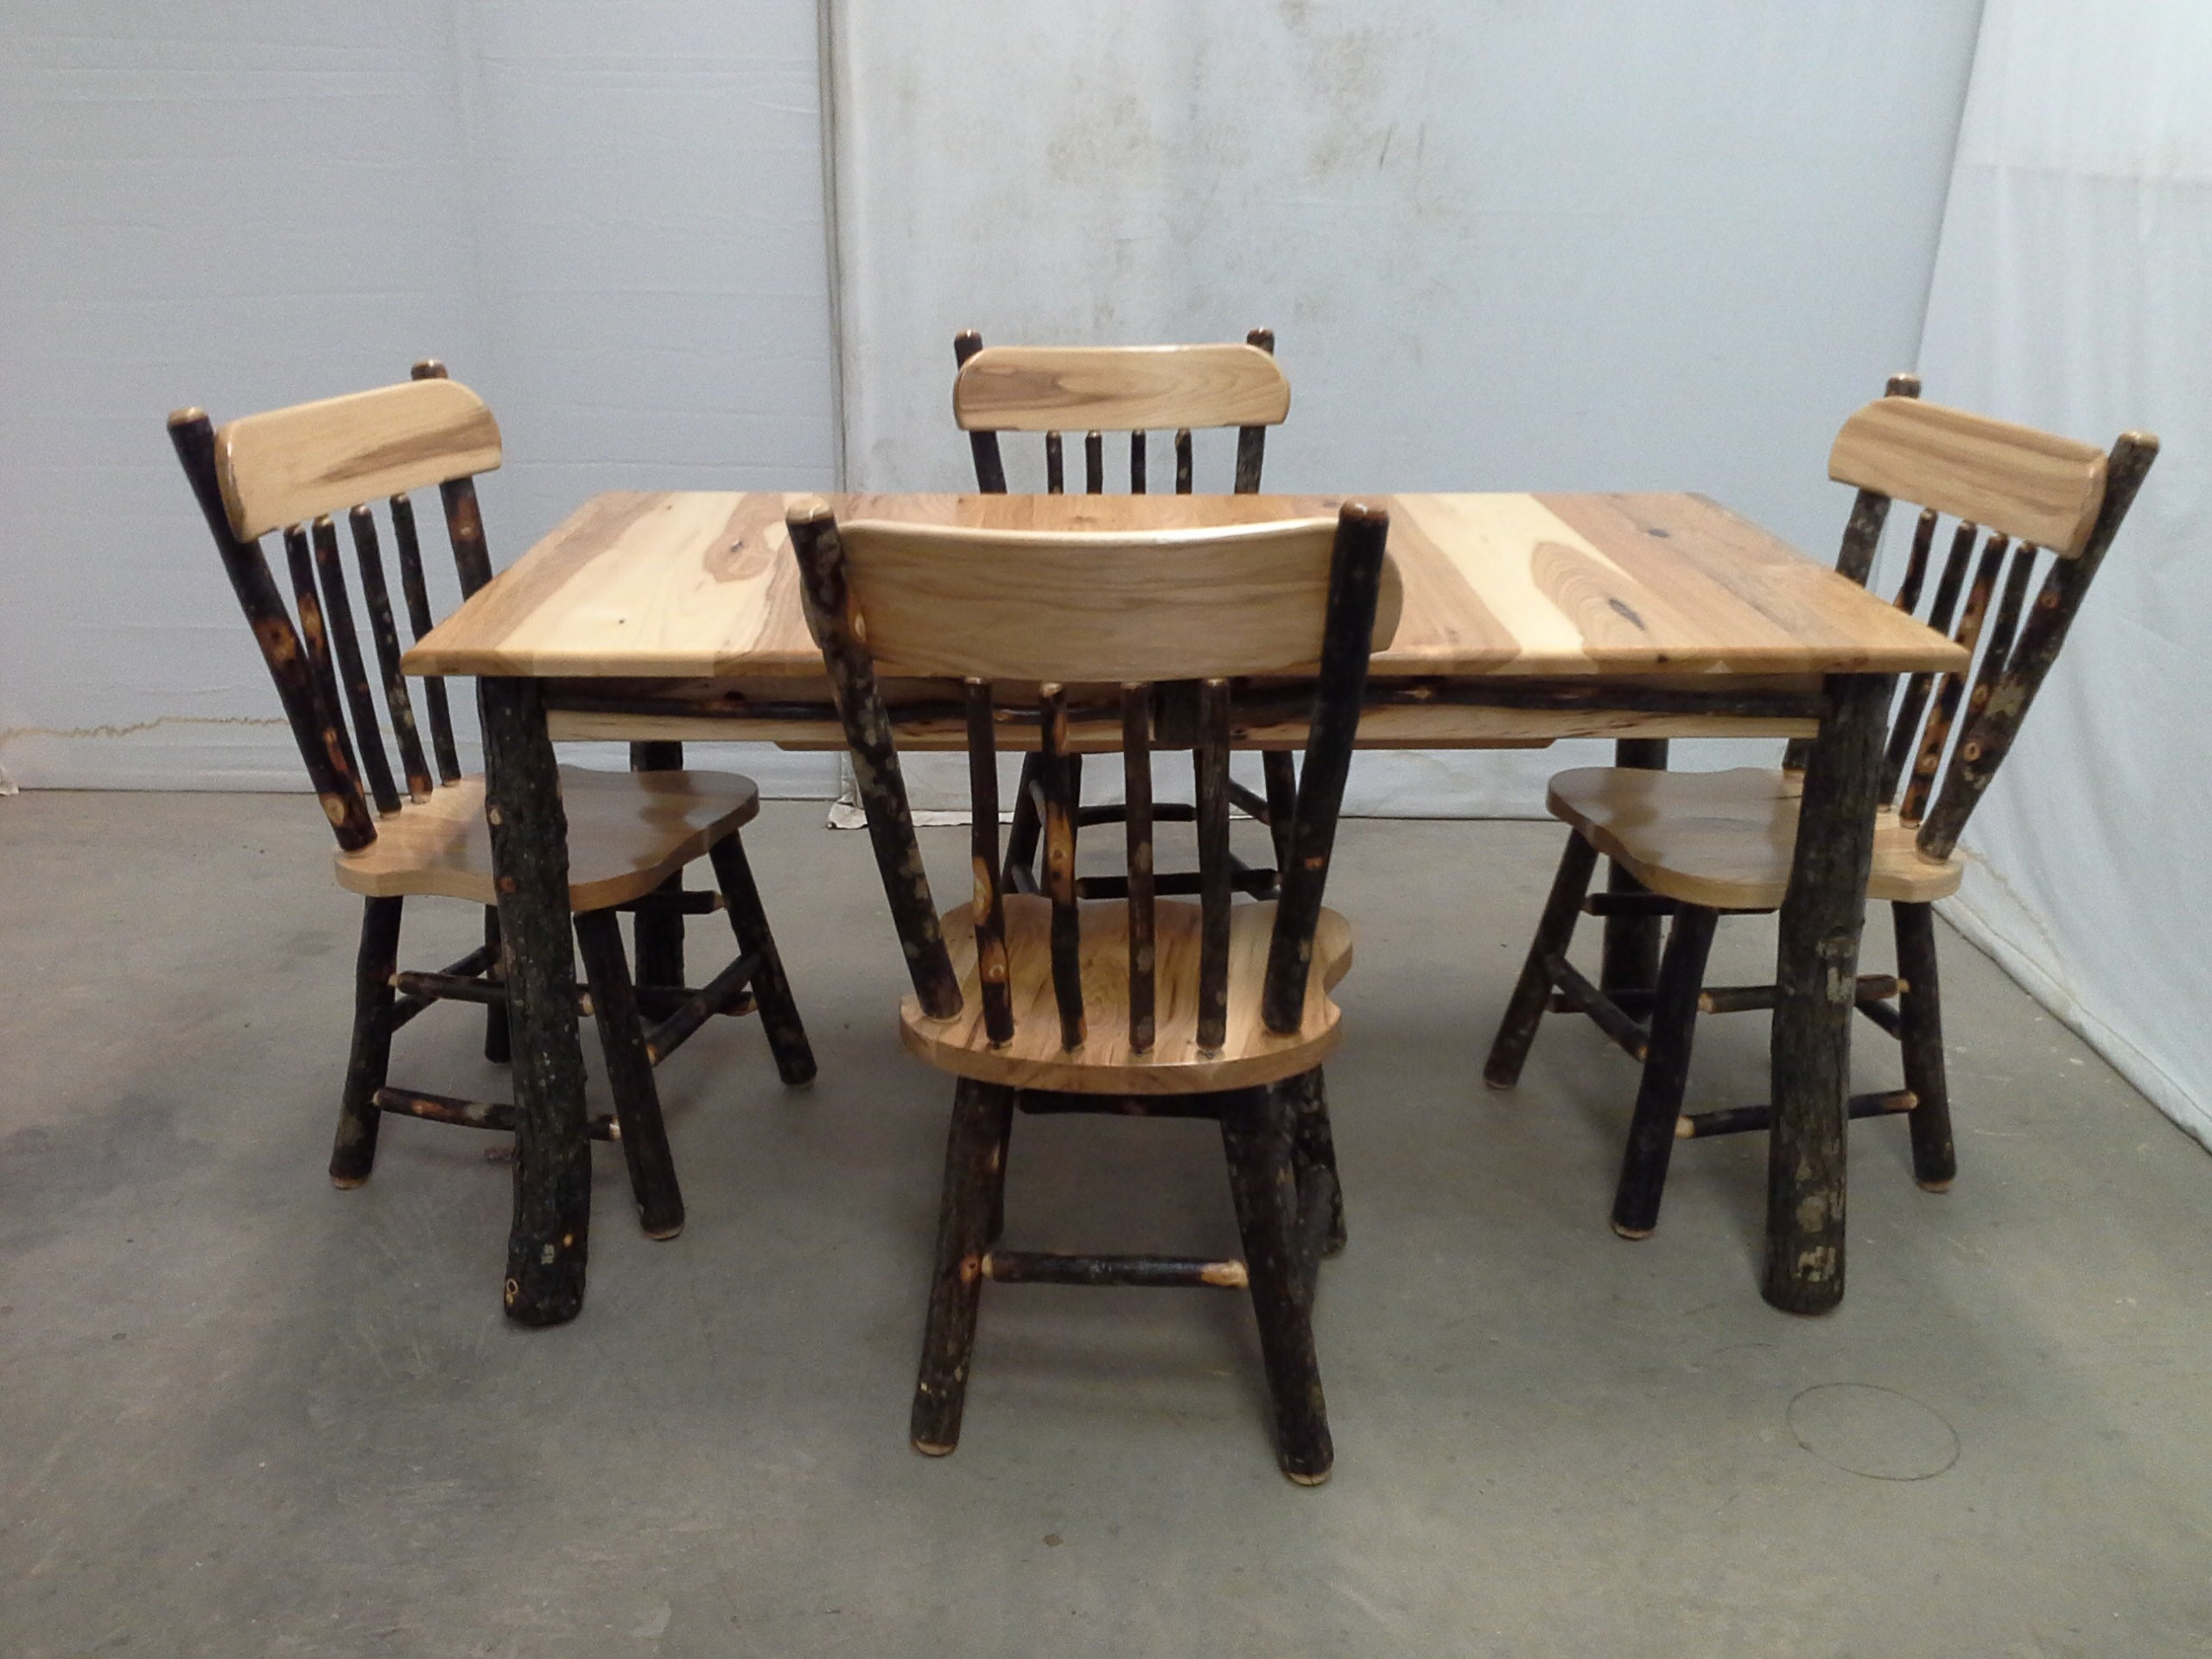 Rustic Furniture For Home Or Cabin Regarding 2017 Reinert 5 Piece Dining Sets (View 20 of 20)